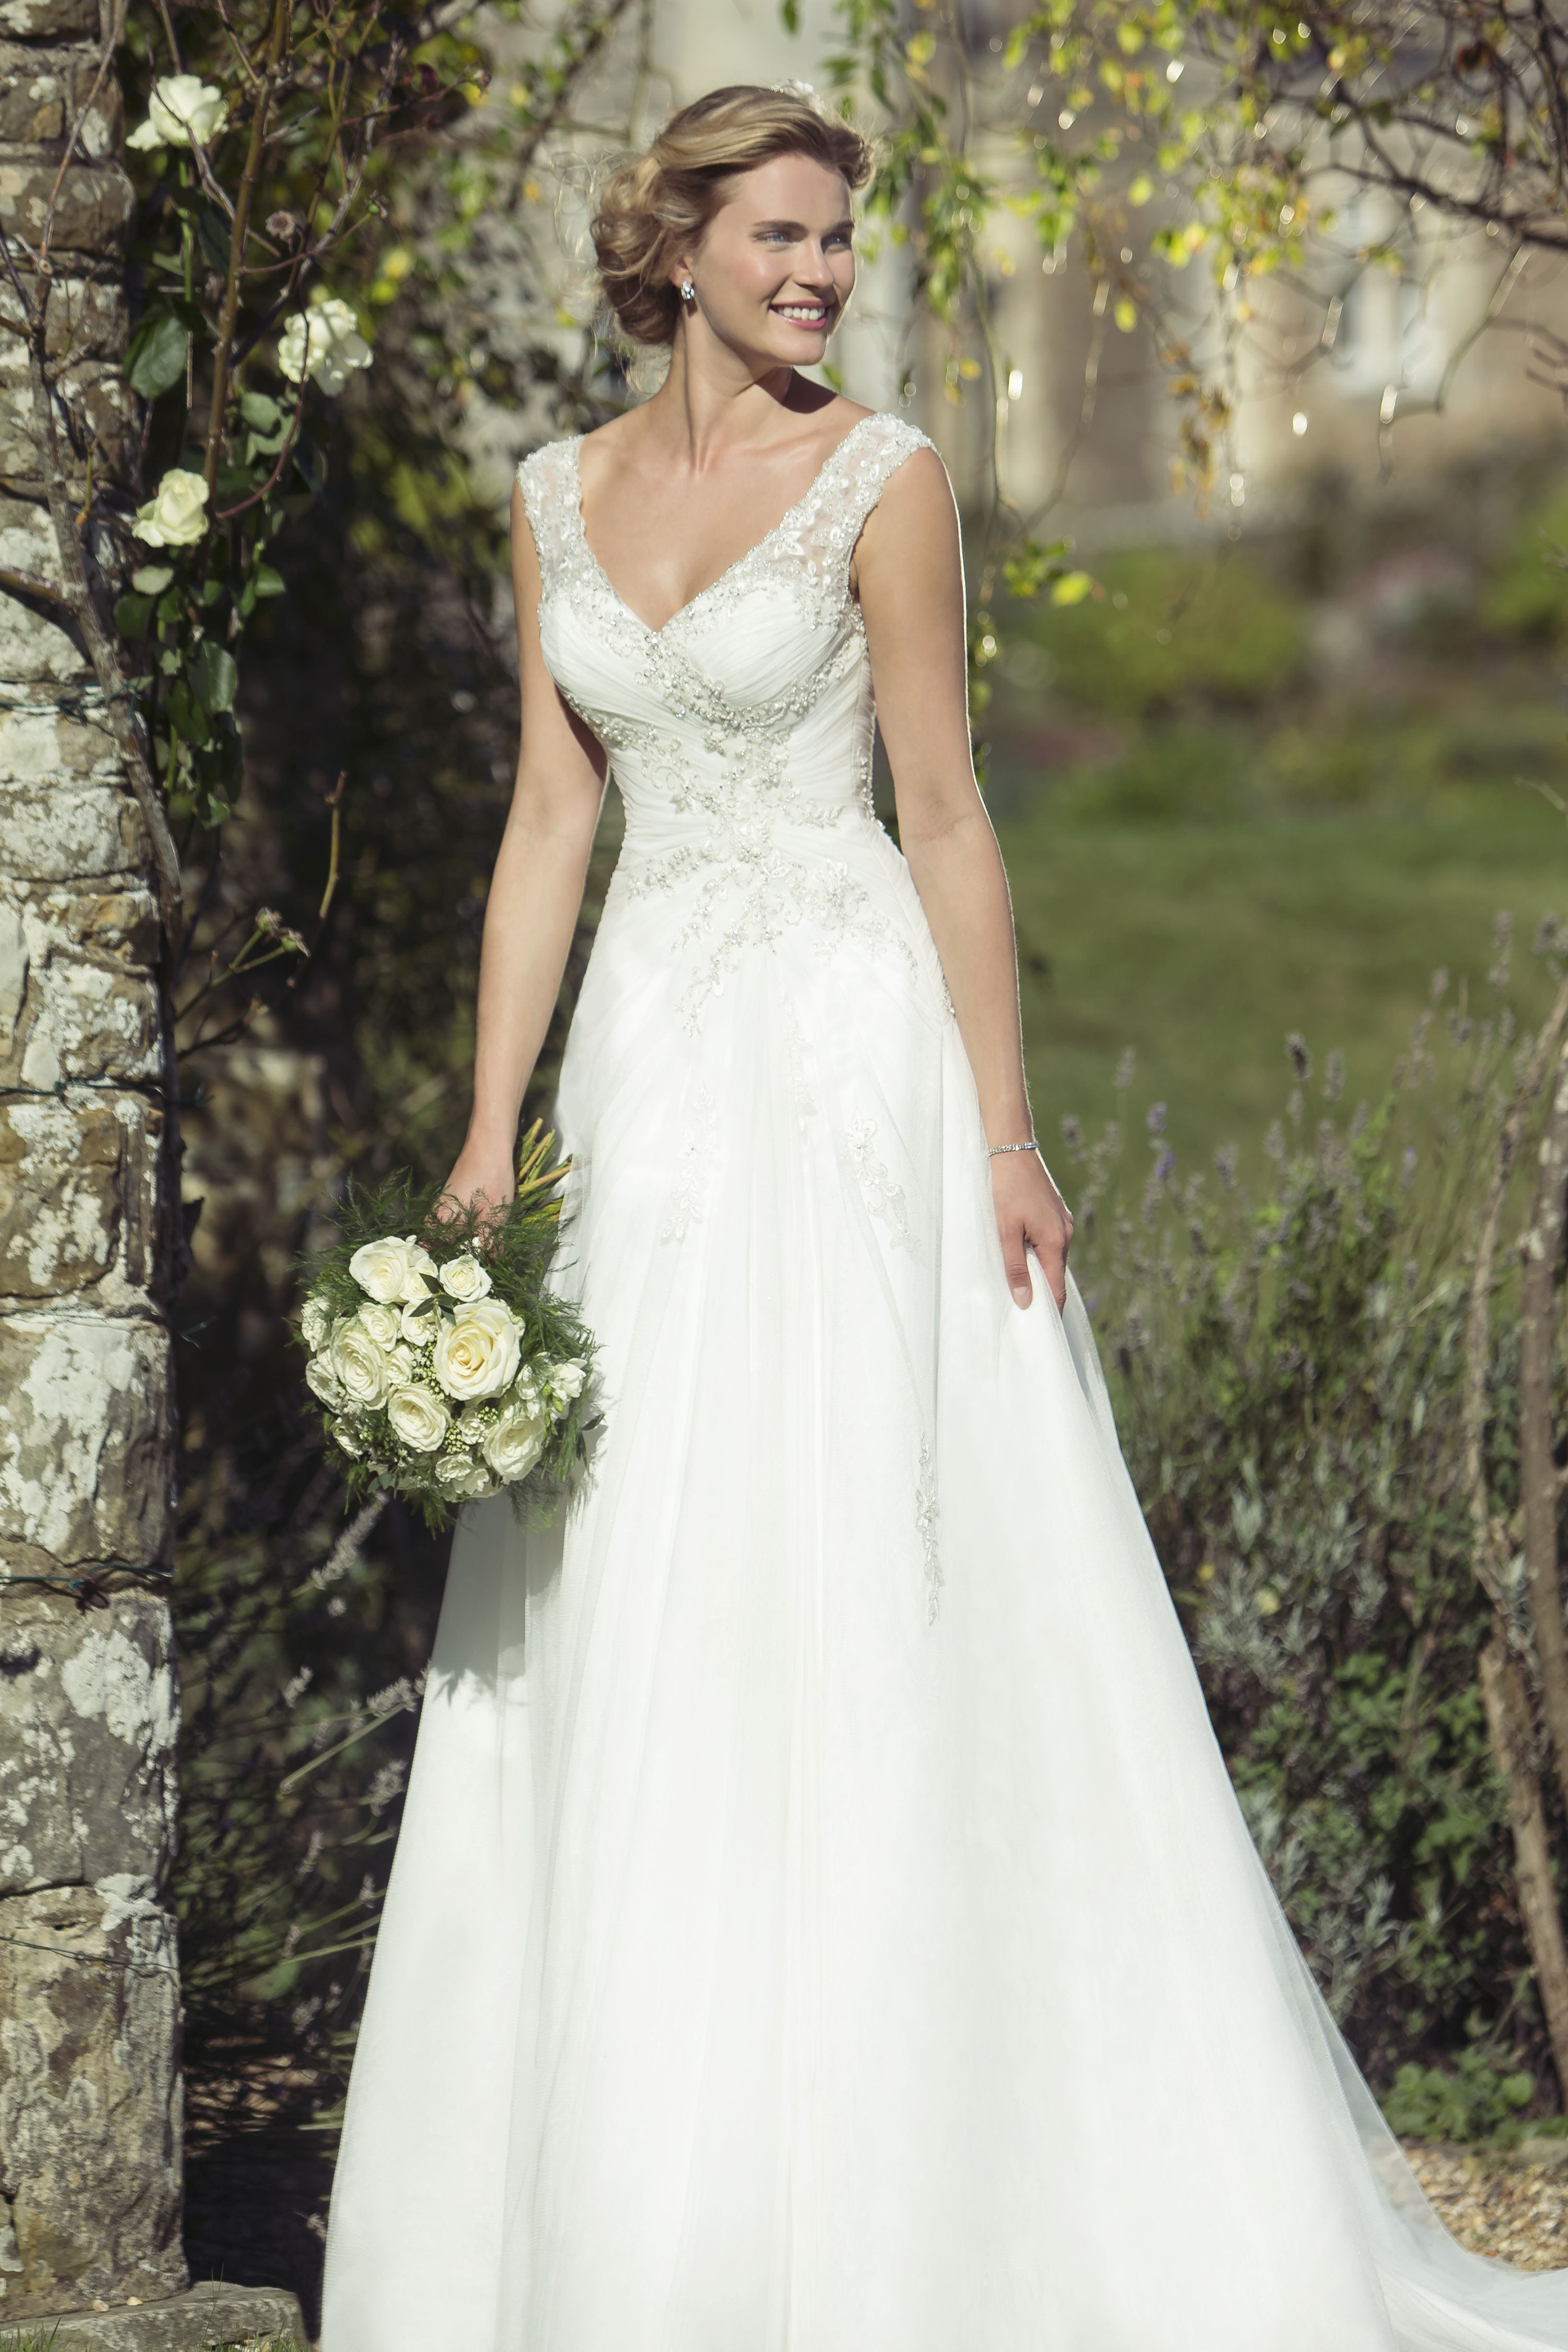 W208 new 2016 collection in stores january stunning tulle w208 new 2016 collection in stores january stunning tulle bridal gown with sheer ombrellifo Image collections